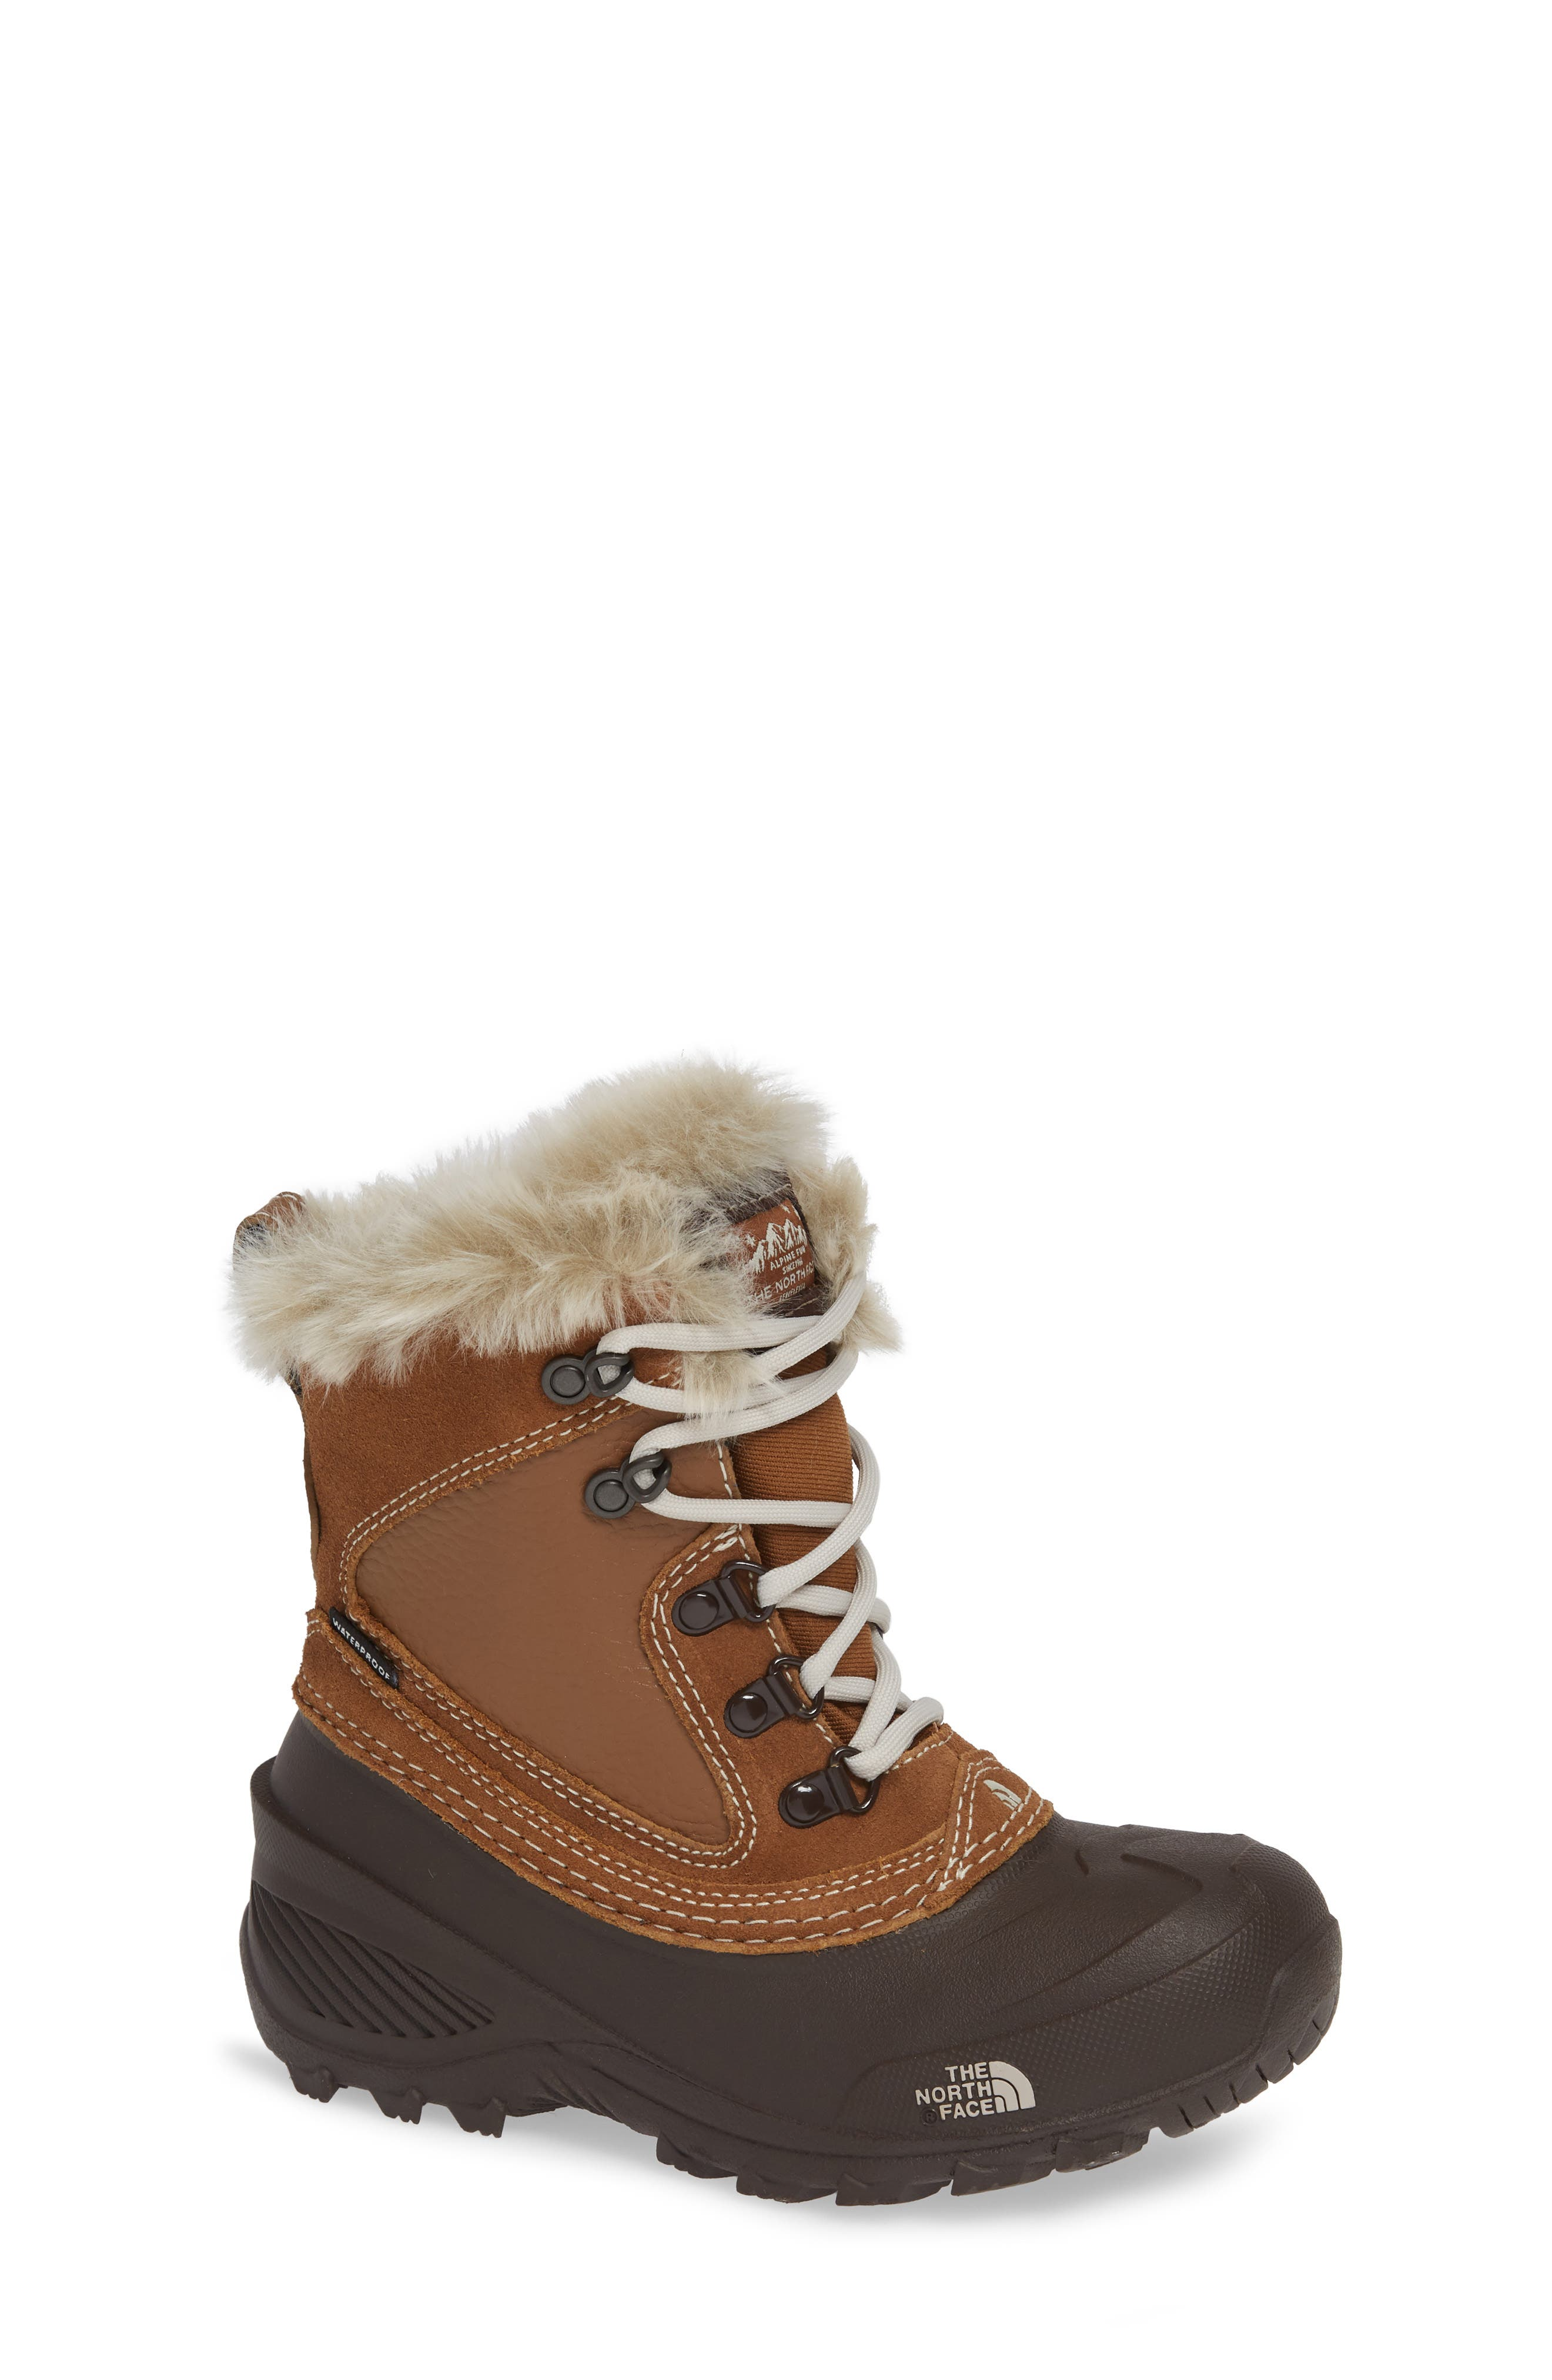 Girls The North Face Shellista Extreme Waterproof Insulated Boot With Faux Fur Trim Size 6 M  Brown